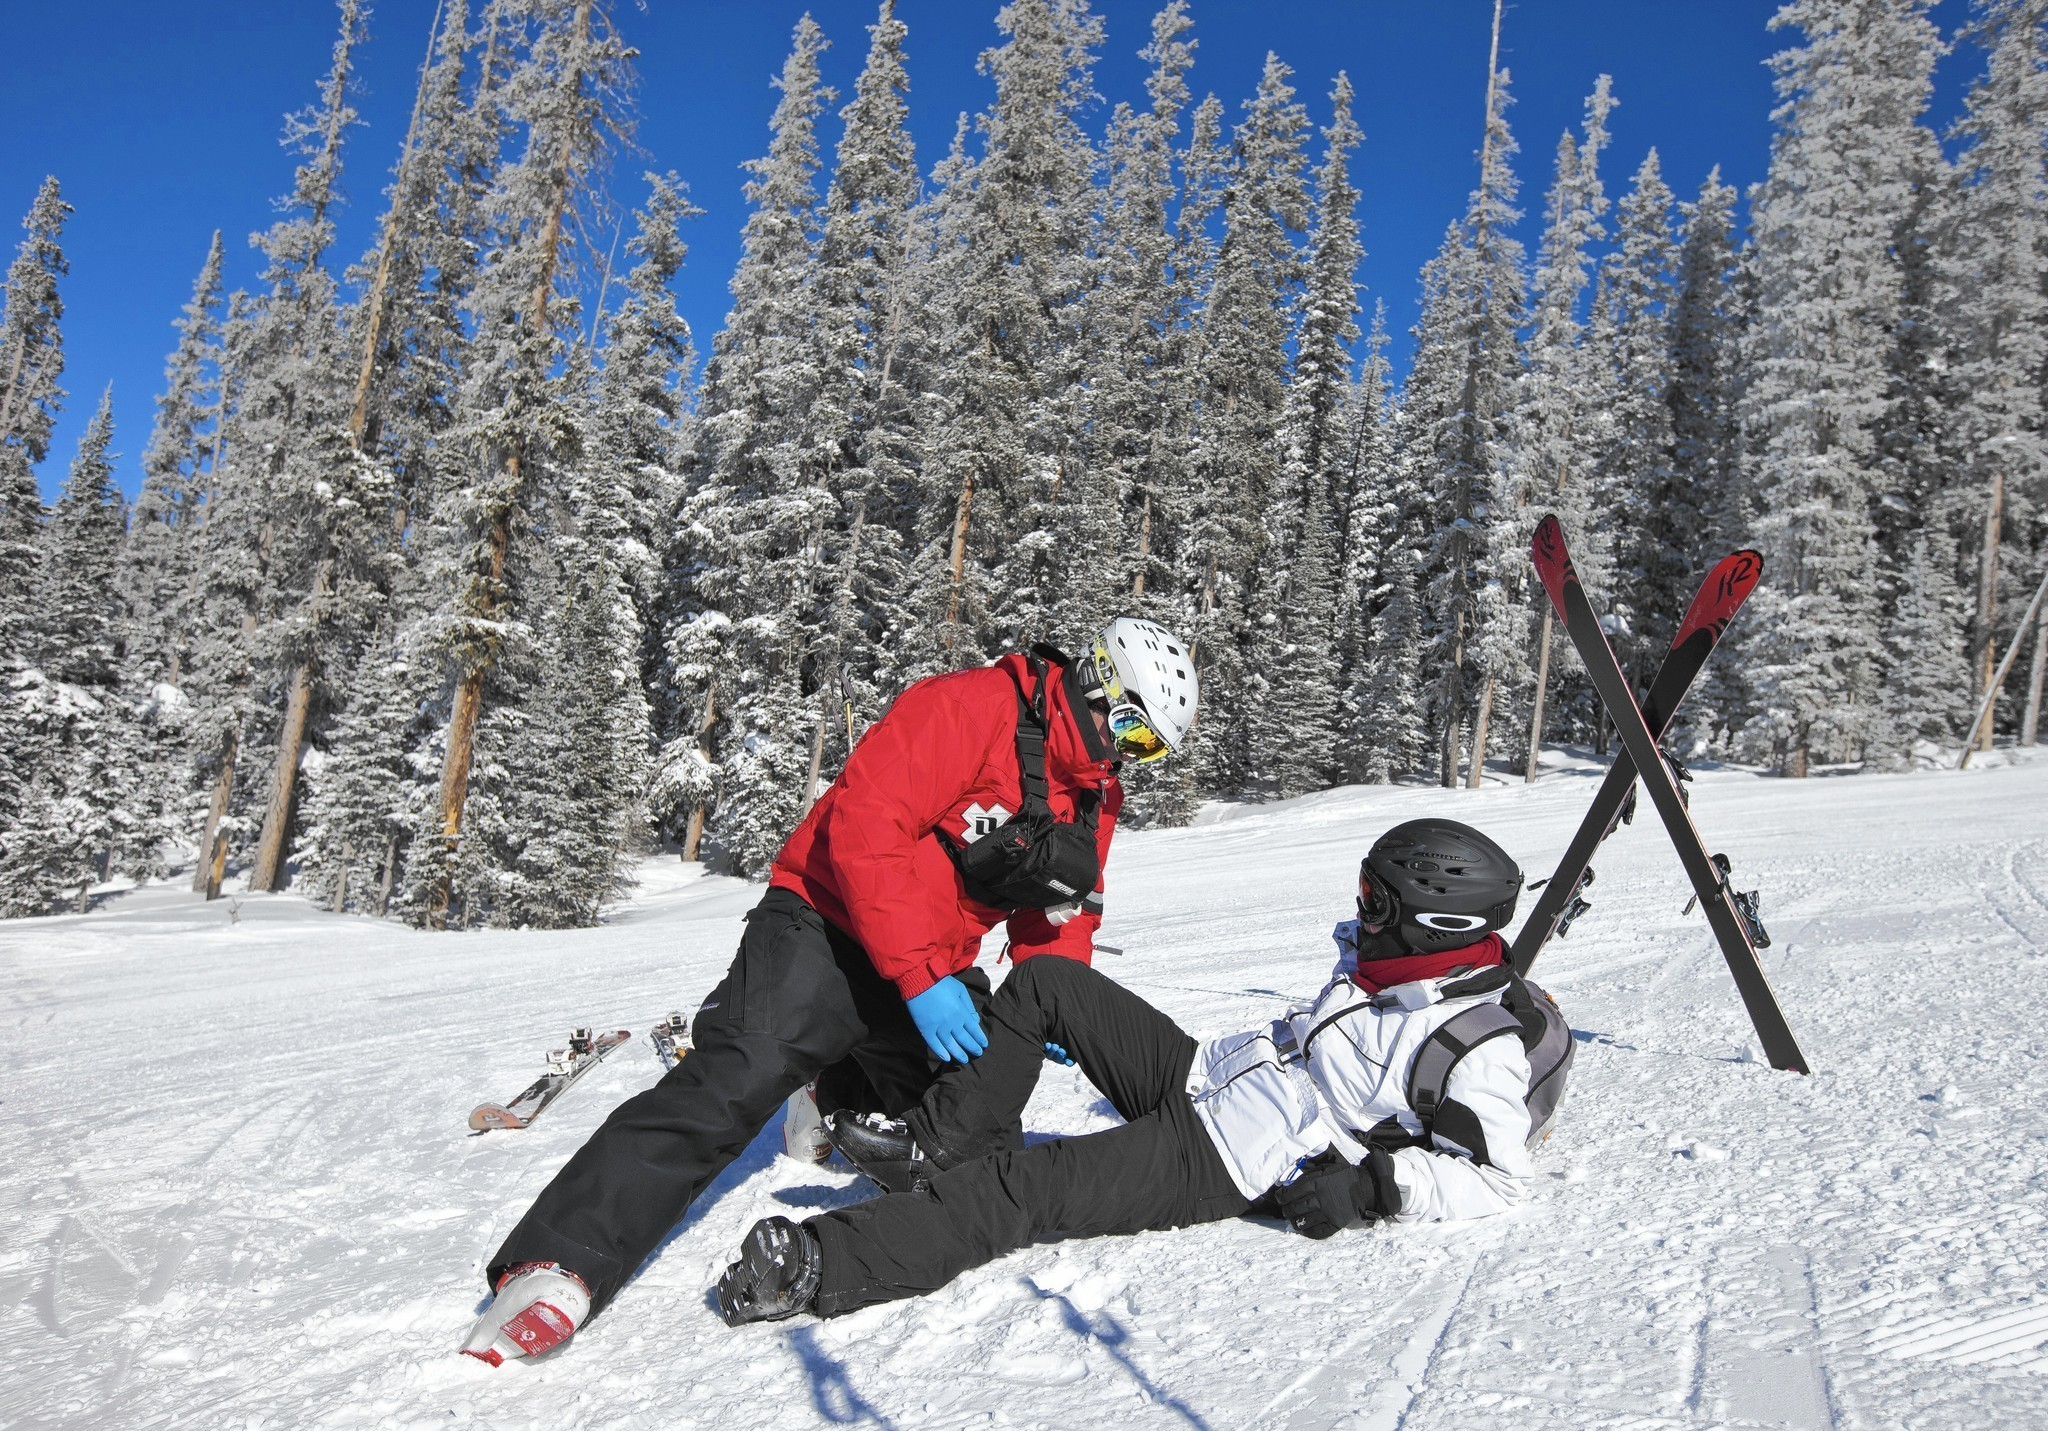 ACL Injuries and Downhill Skiing recommend